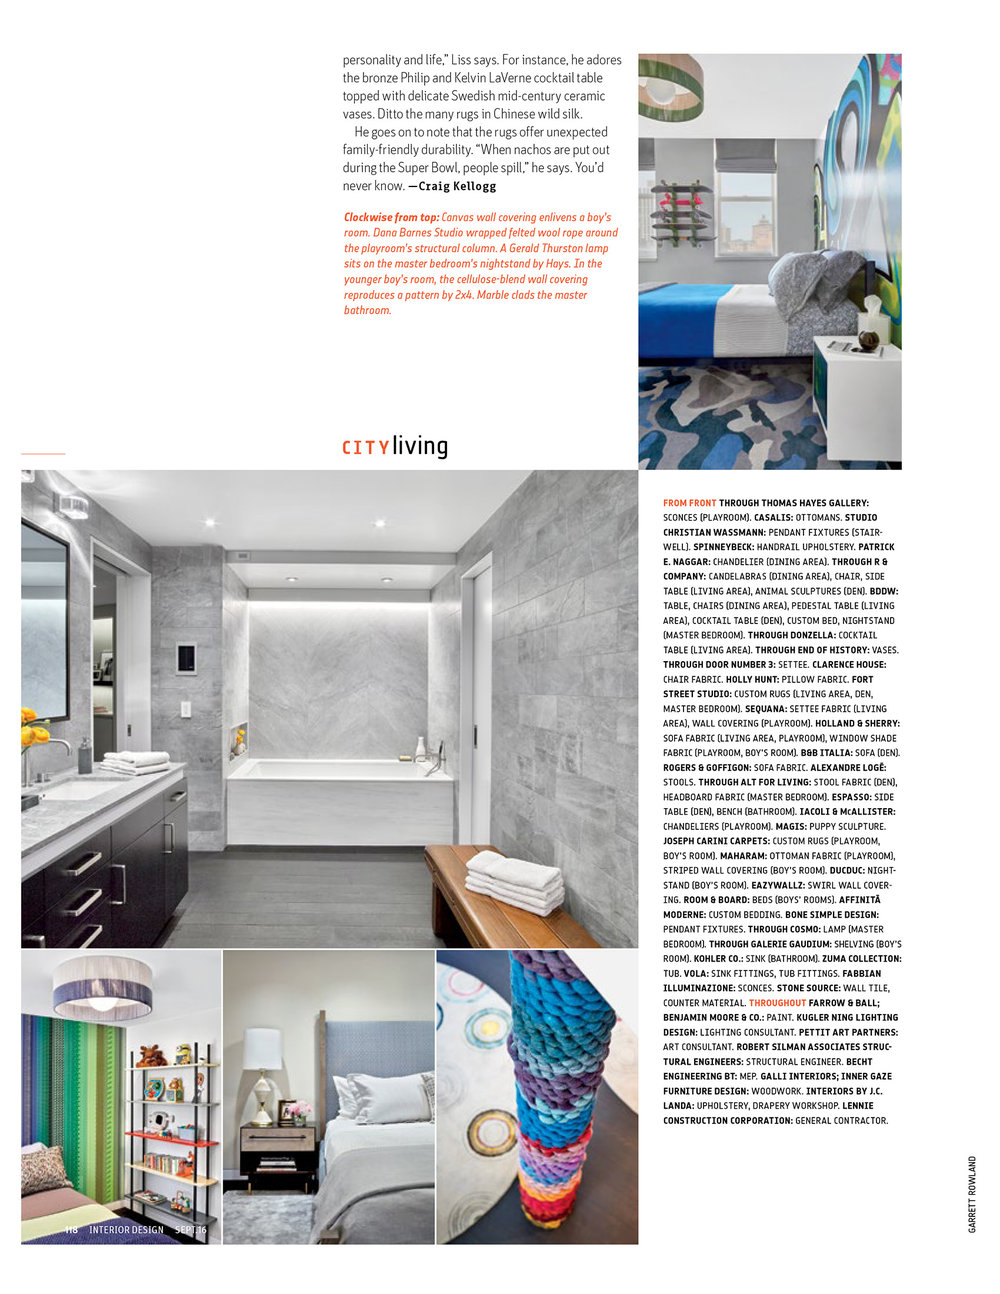 Interior-Design_161-Duane-St_Oct-16_Page-4-3.jpg